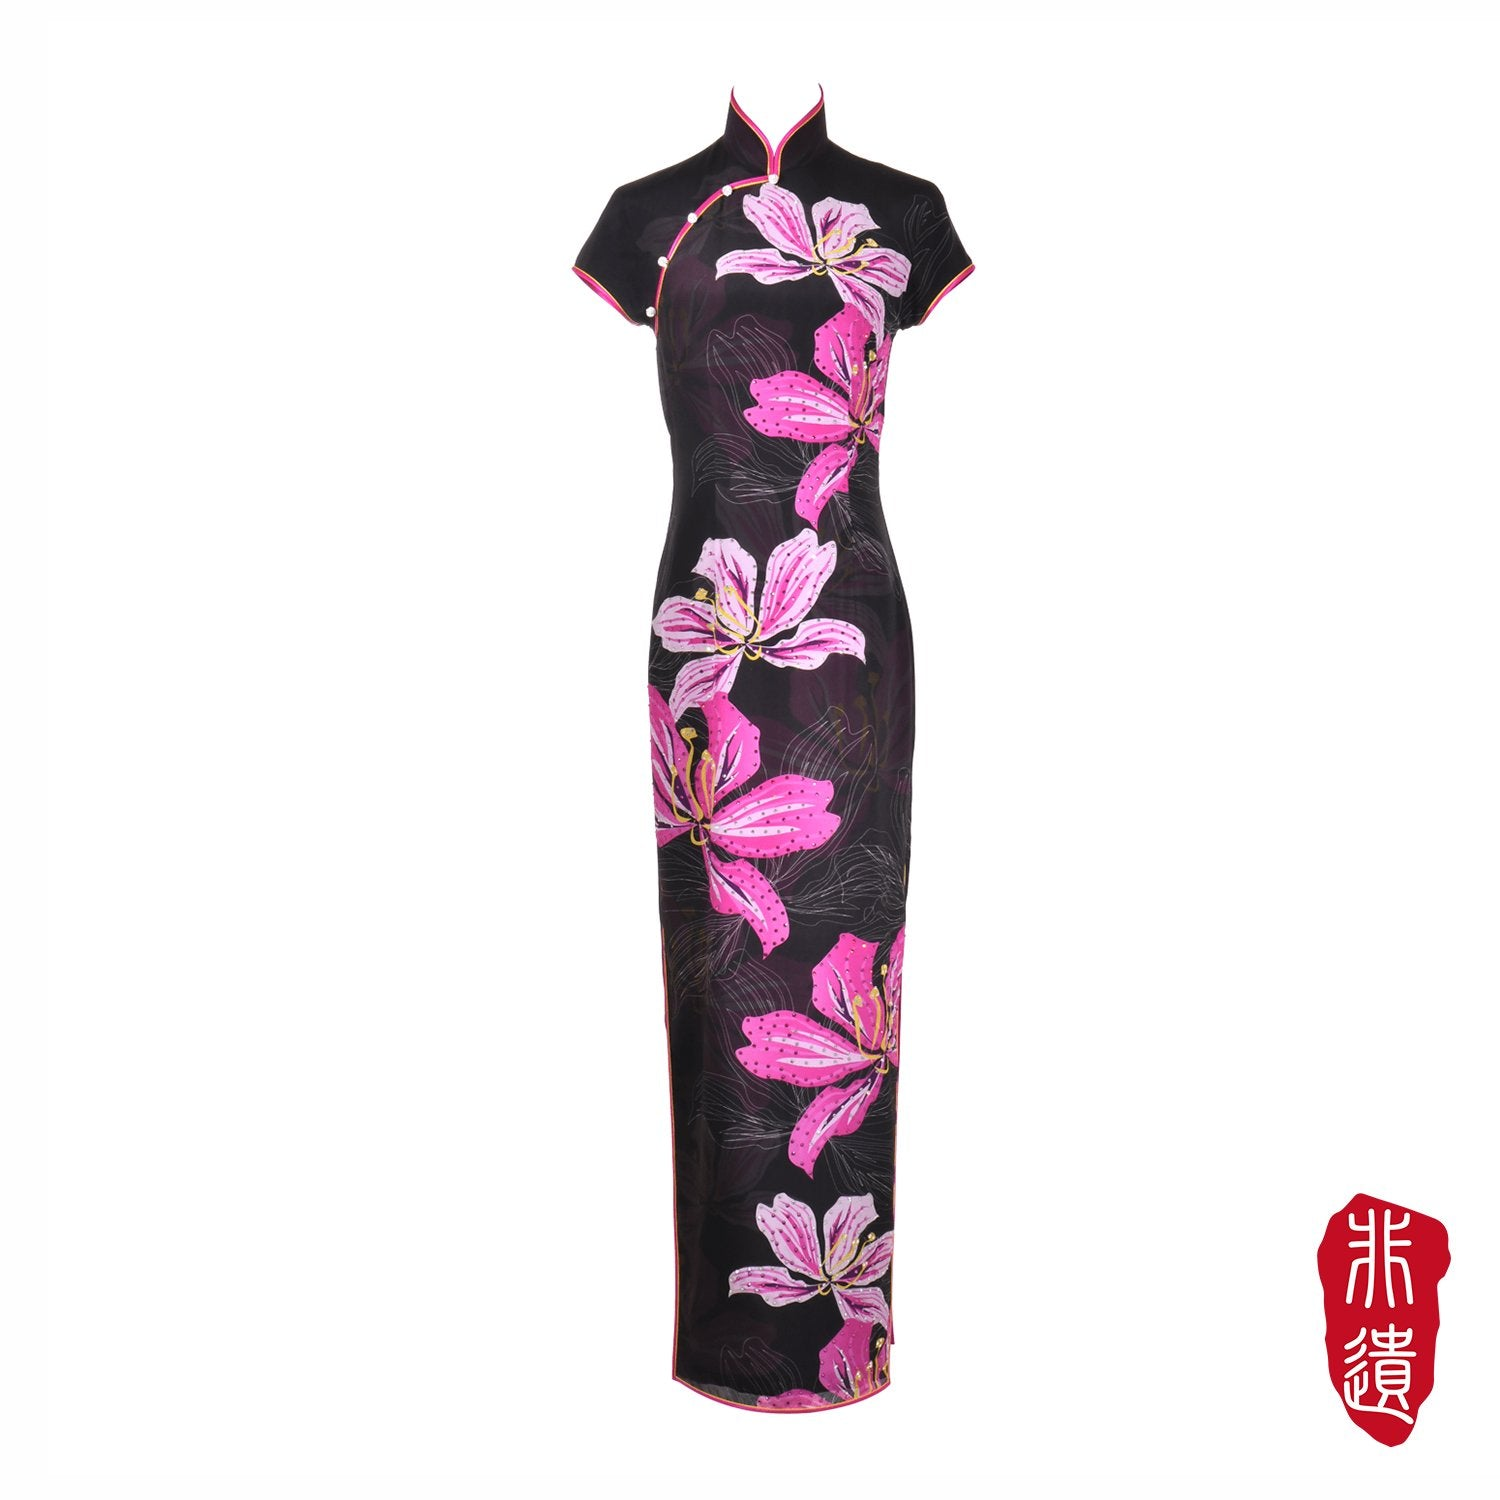 【BAUHINIA】Masterpiece Collection Haute Couture 100% Silk Crystal Cheongsam - THE SPARKLE COLLECTION by GERMAN POOL